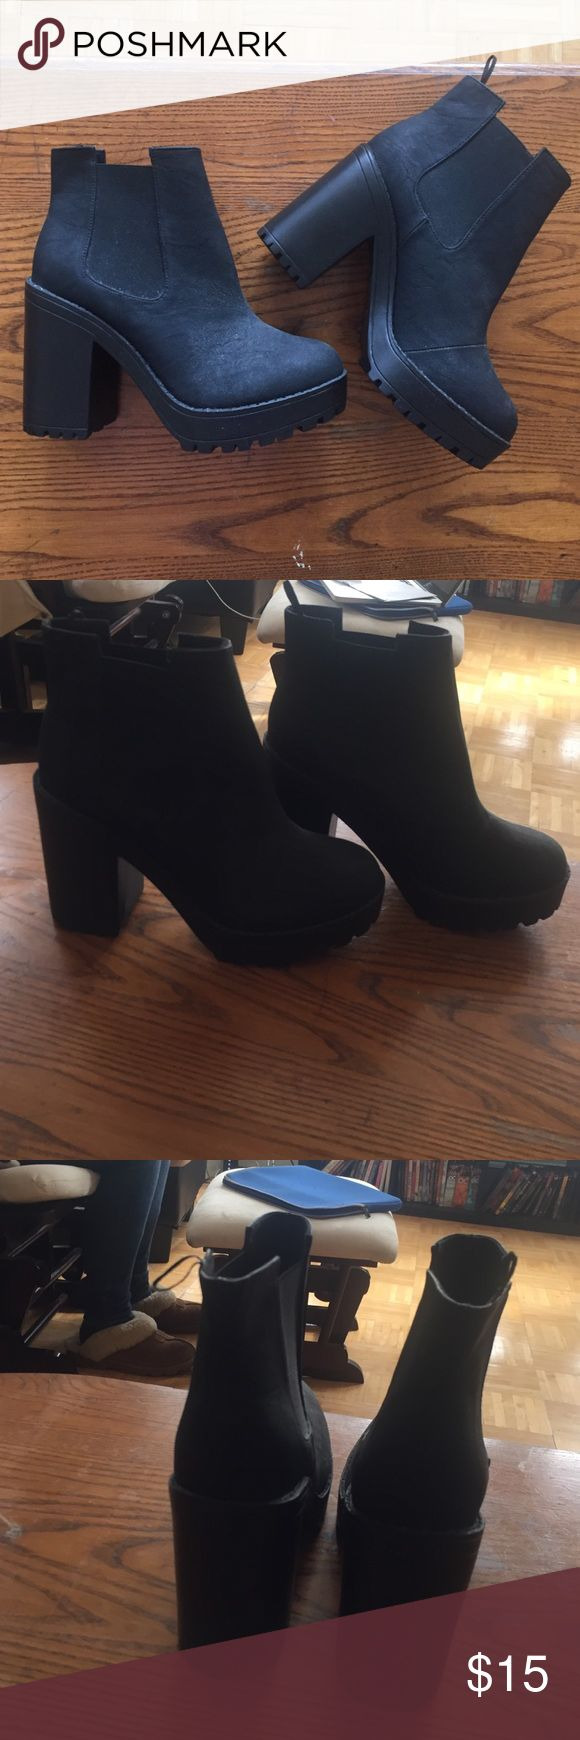 Black wedge Ankle boot-never been worn Black heeled platform boot. Never been worn, tags have been removed but sticker on bottom of heel. H&M Shoes Ankle Boots & Booties